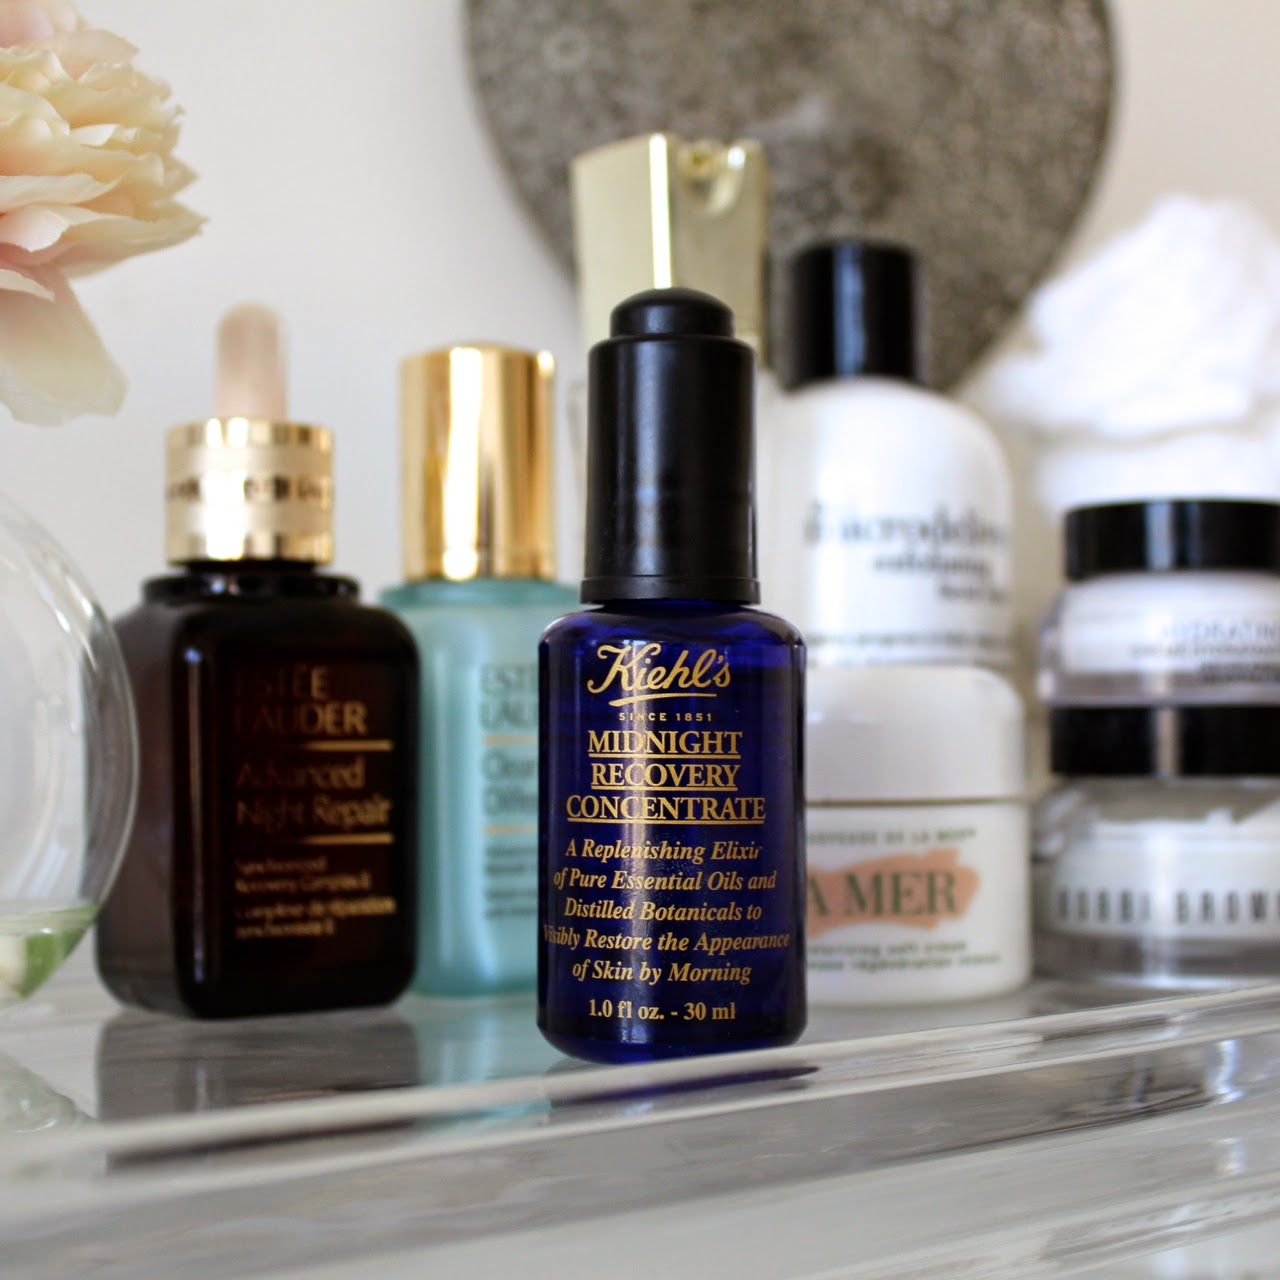 kiehls overnight oil